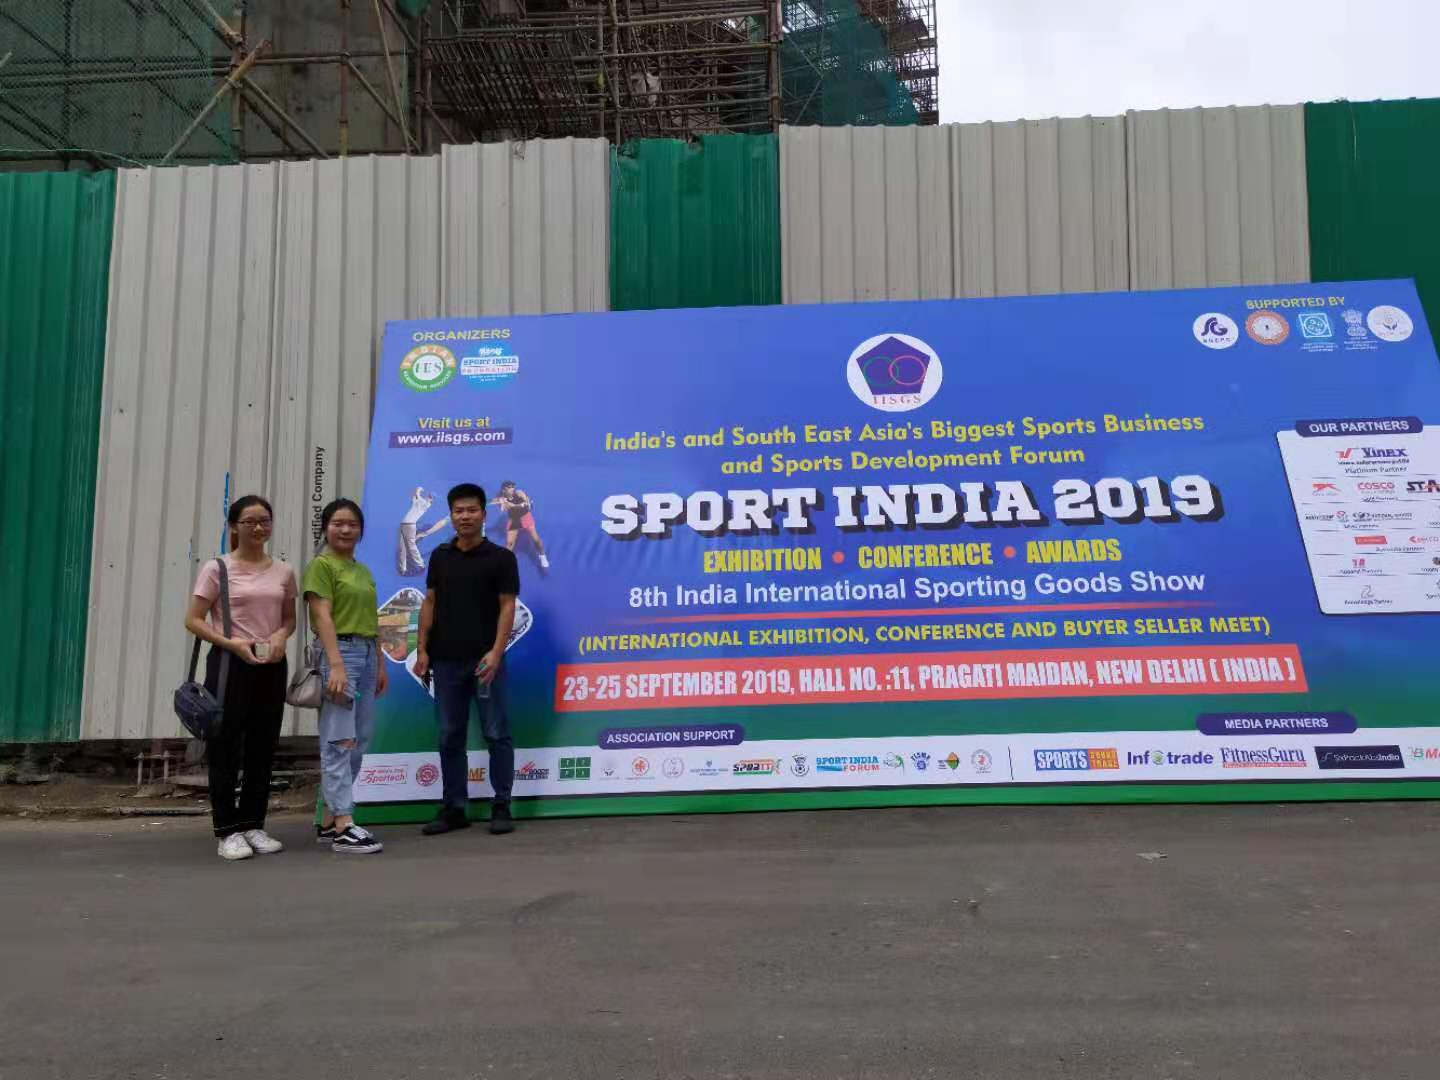 Sports India 2019